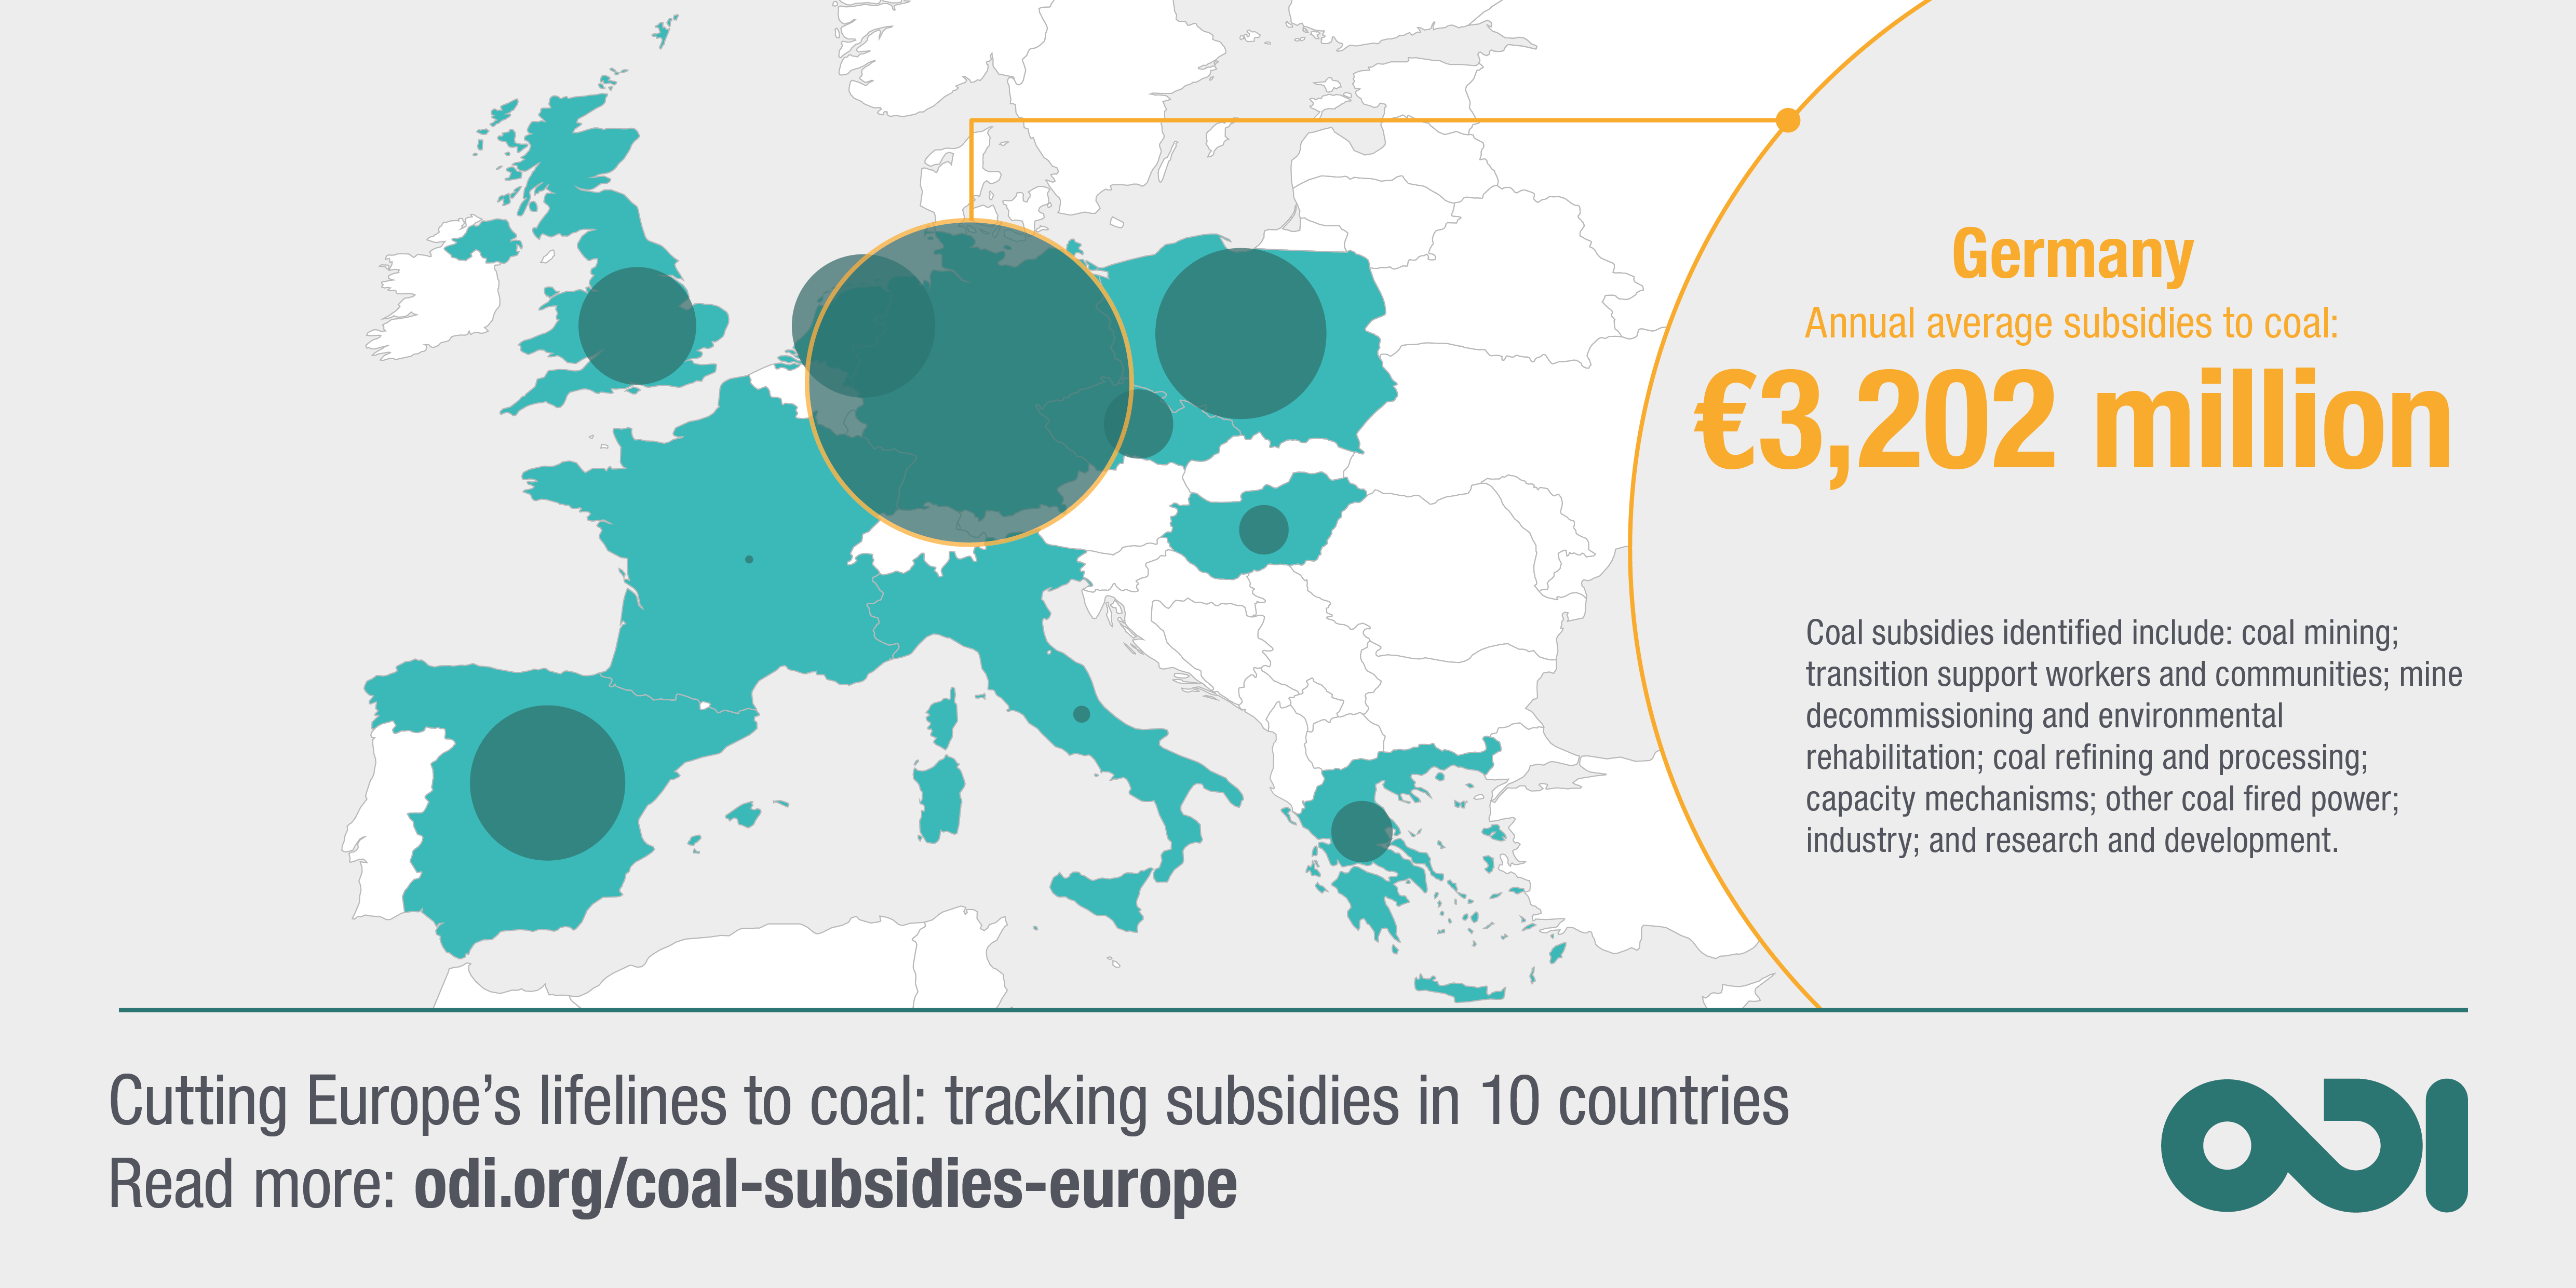 Infographic: Coal subsidies in Germany